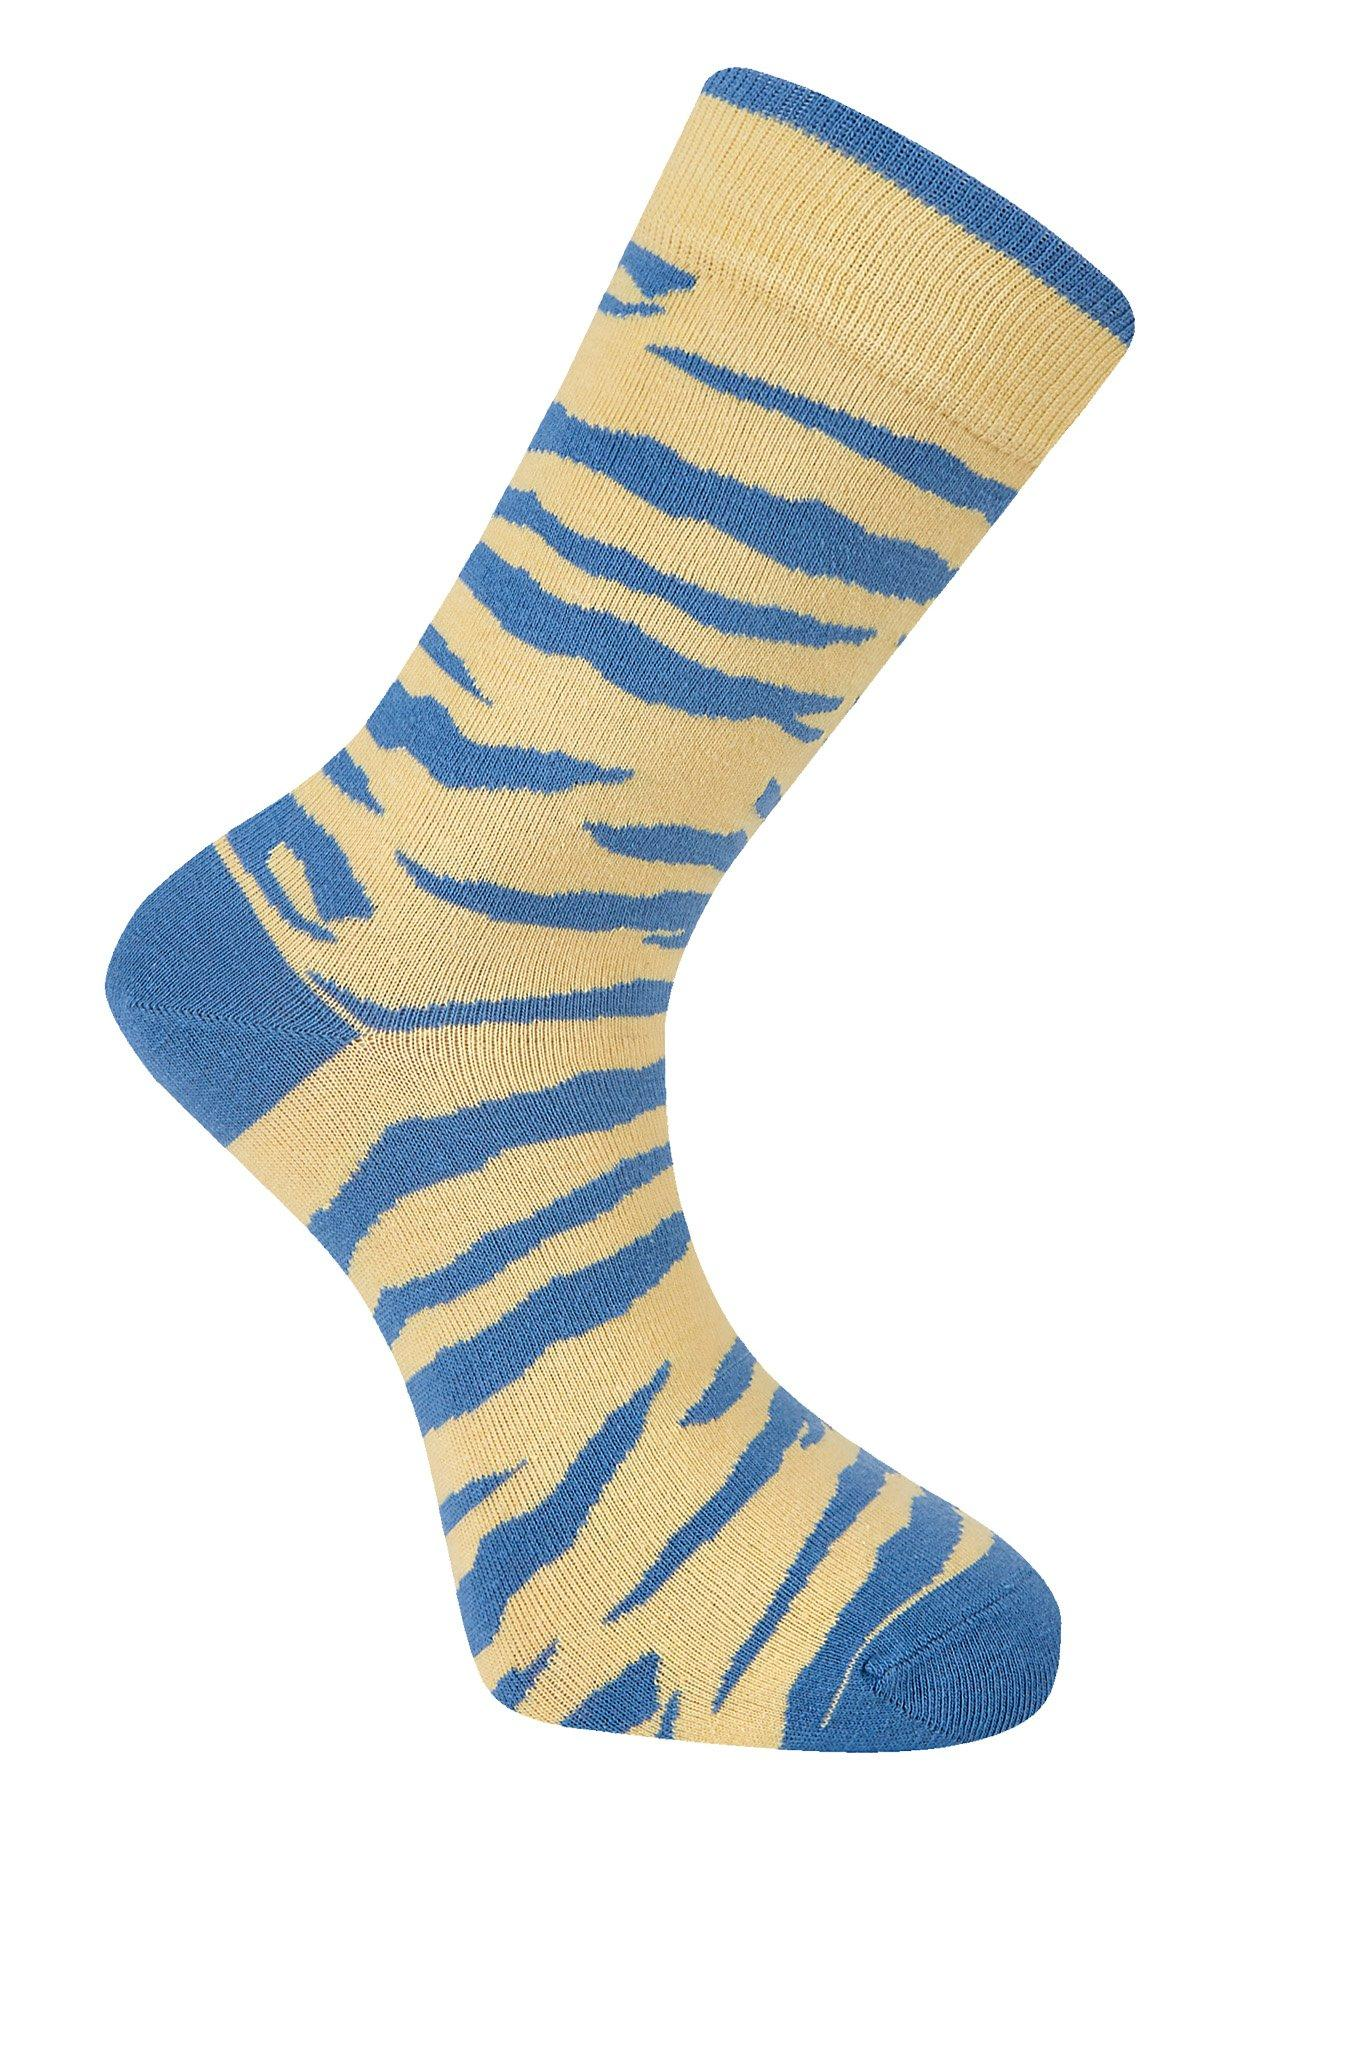 ANIMAL Hydron Organic Cotton Socks - Komodo Fashion